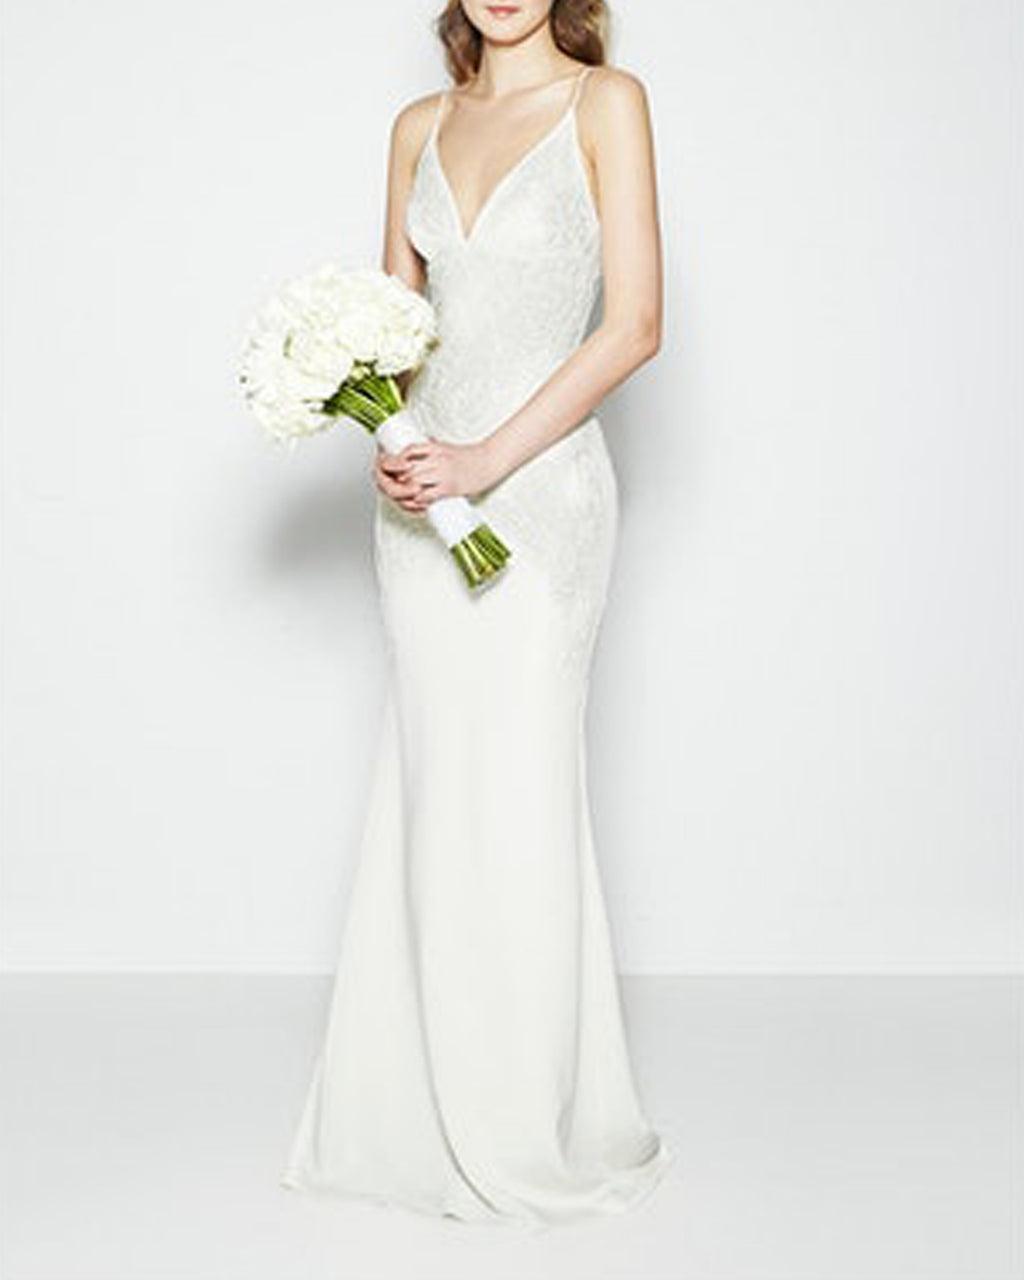 KS10000 - ANNABEL BAROQUE BEADED HEAVY STR CDC - samples - bridal - Final Sale Add 1 line break BRIDAL GOWN